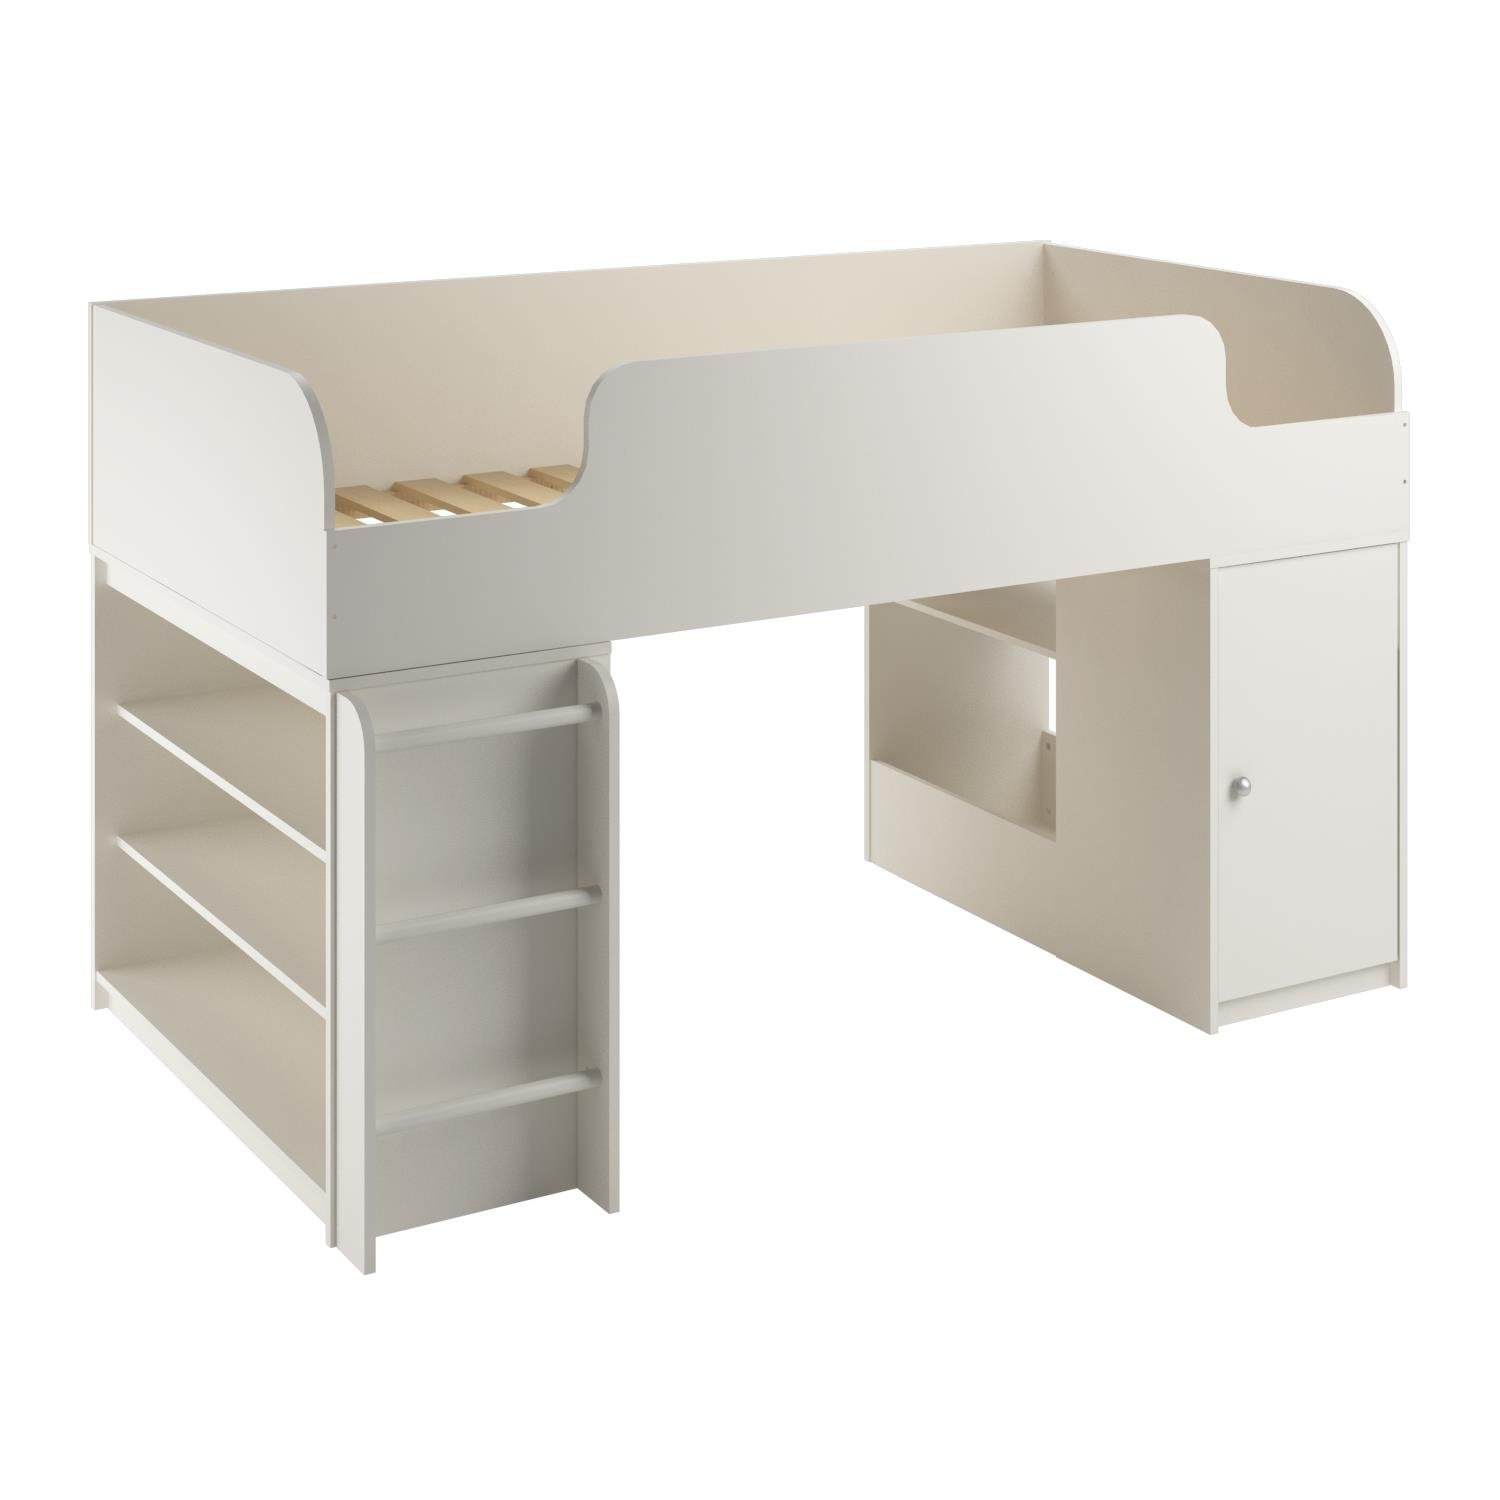 Cosco Products Elements Loft Bed with Toy Box Bookcase, White Stipple